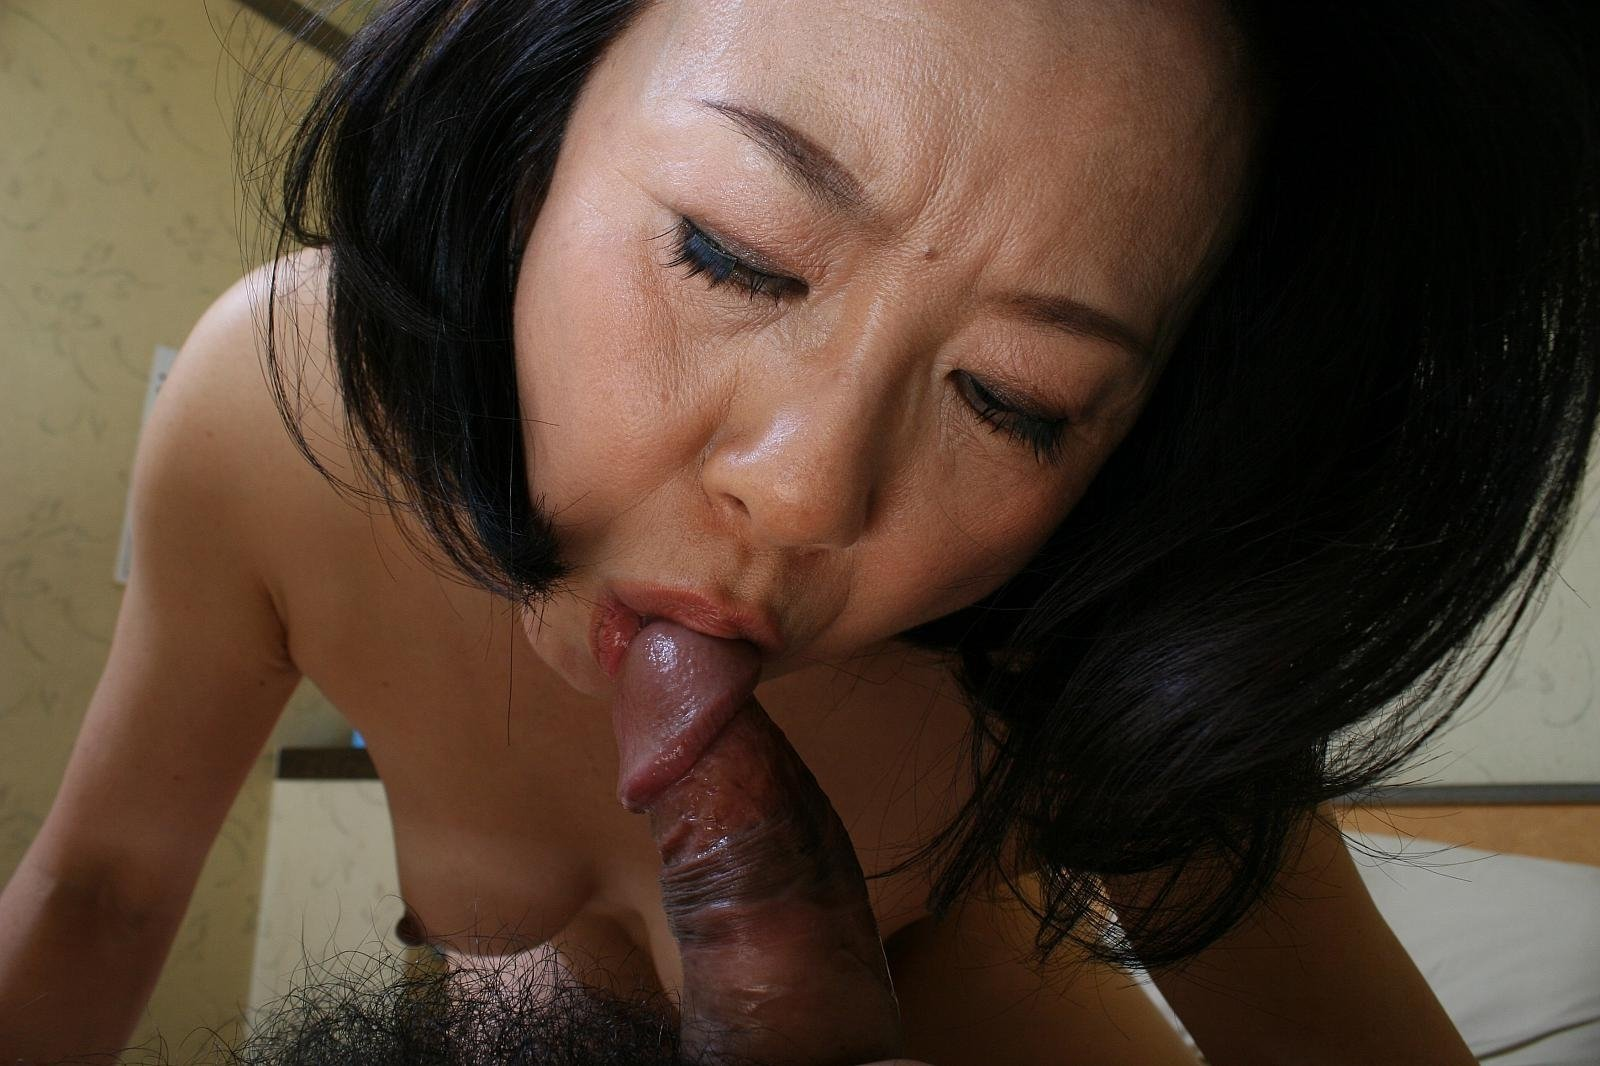 Exotic asian chick yuki reveals hot body and gives blowjob before having sex